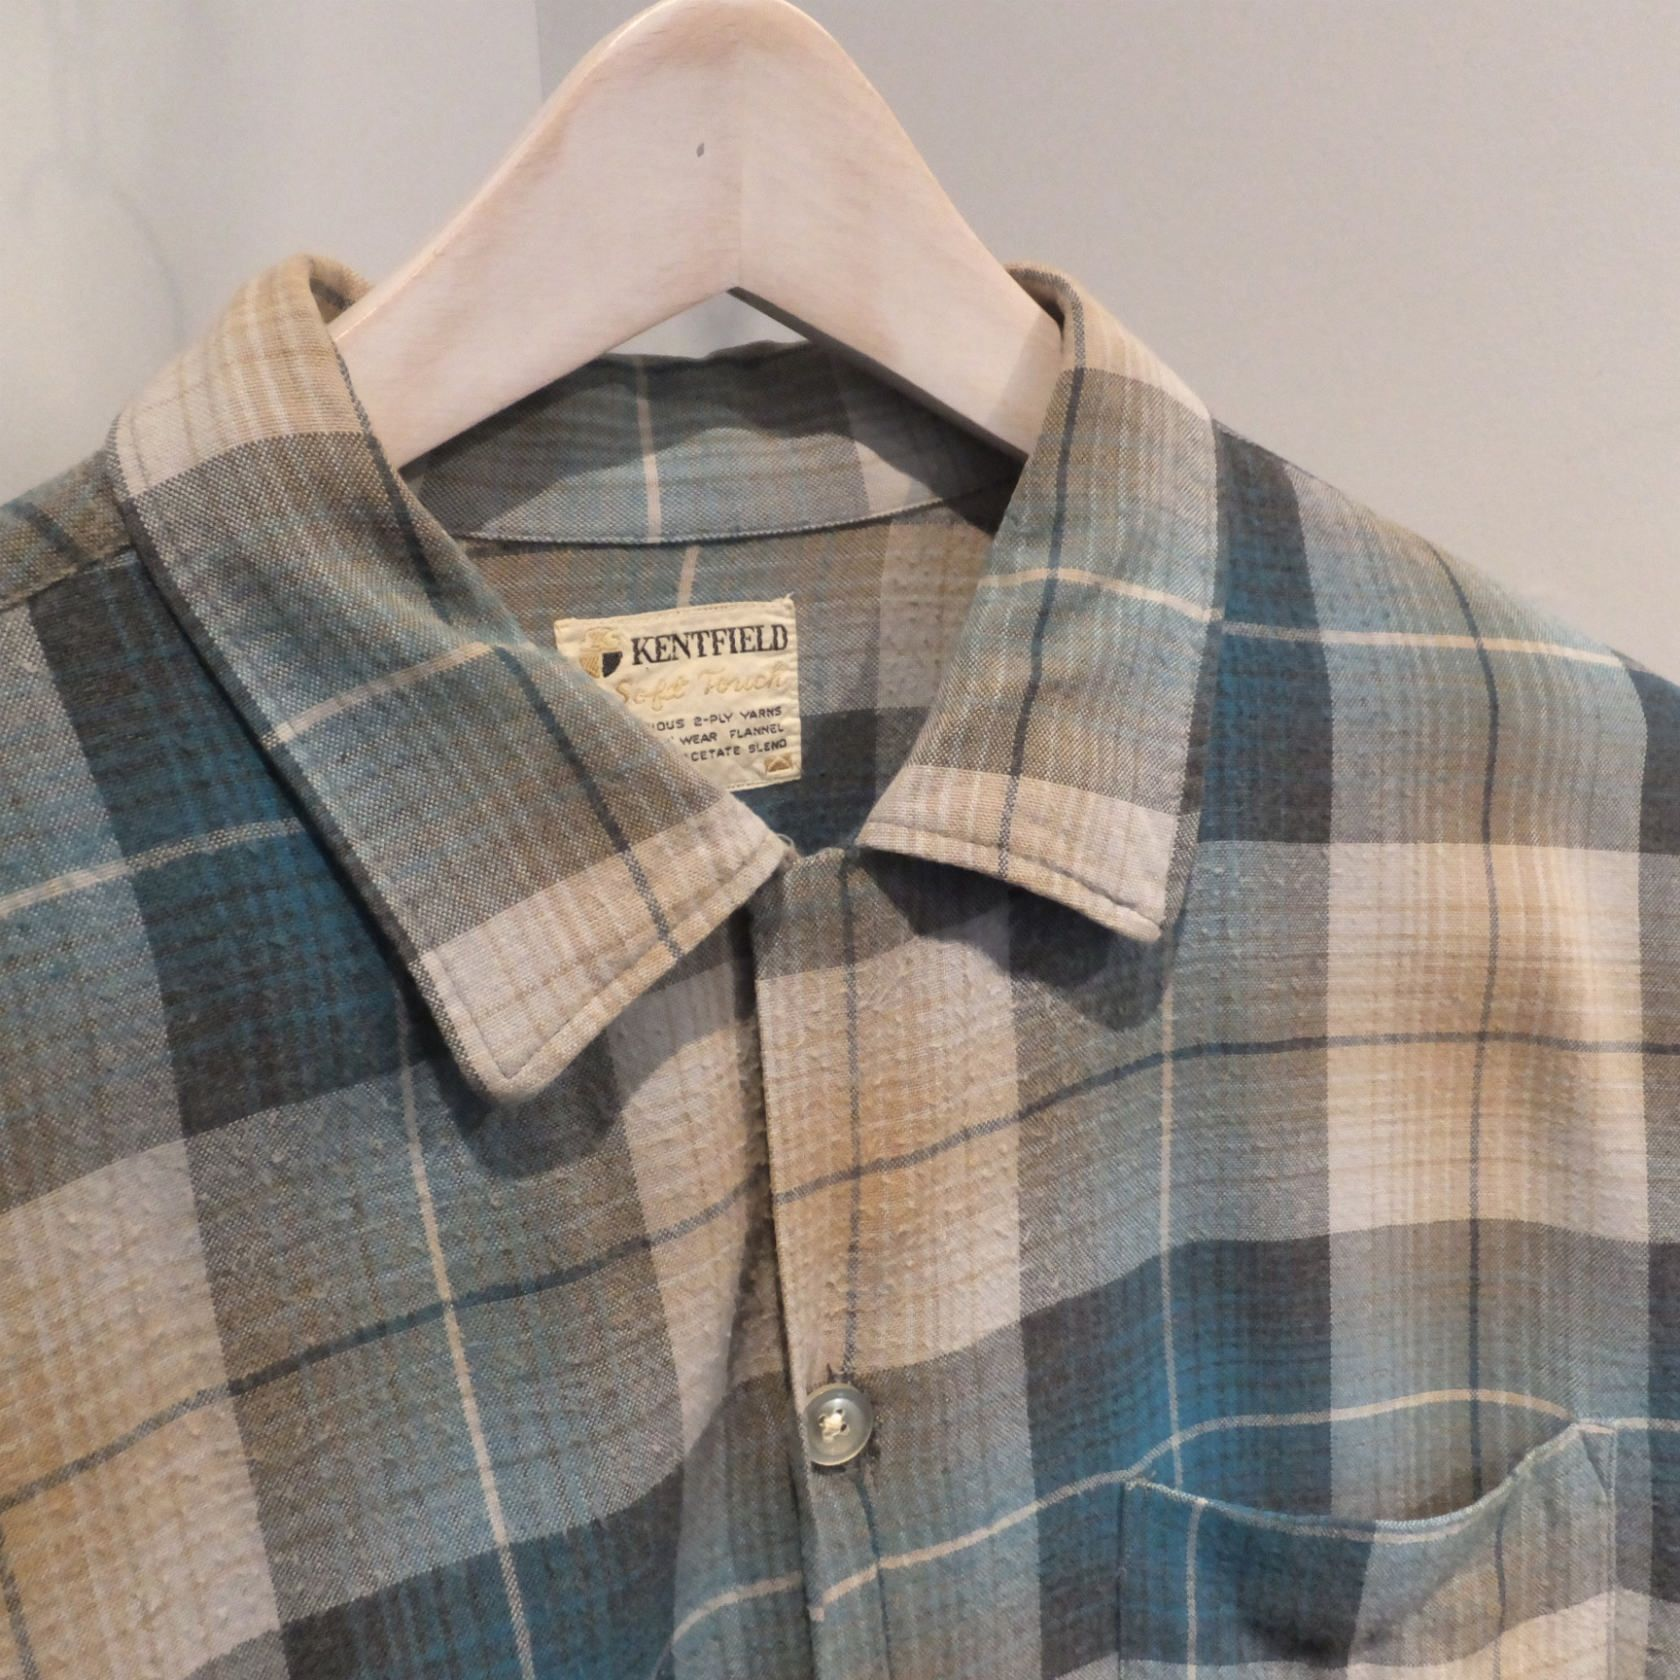 Vintage Shirts【KENTFIELD】| RUMHOLE beruf - Online Store 公式通販サイト